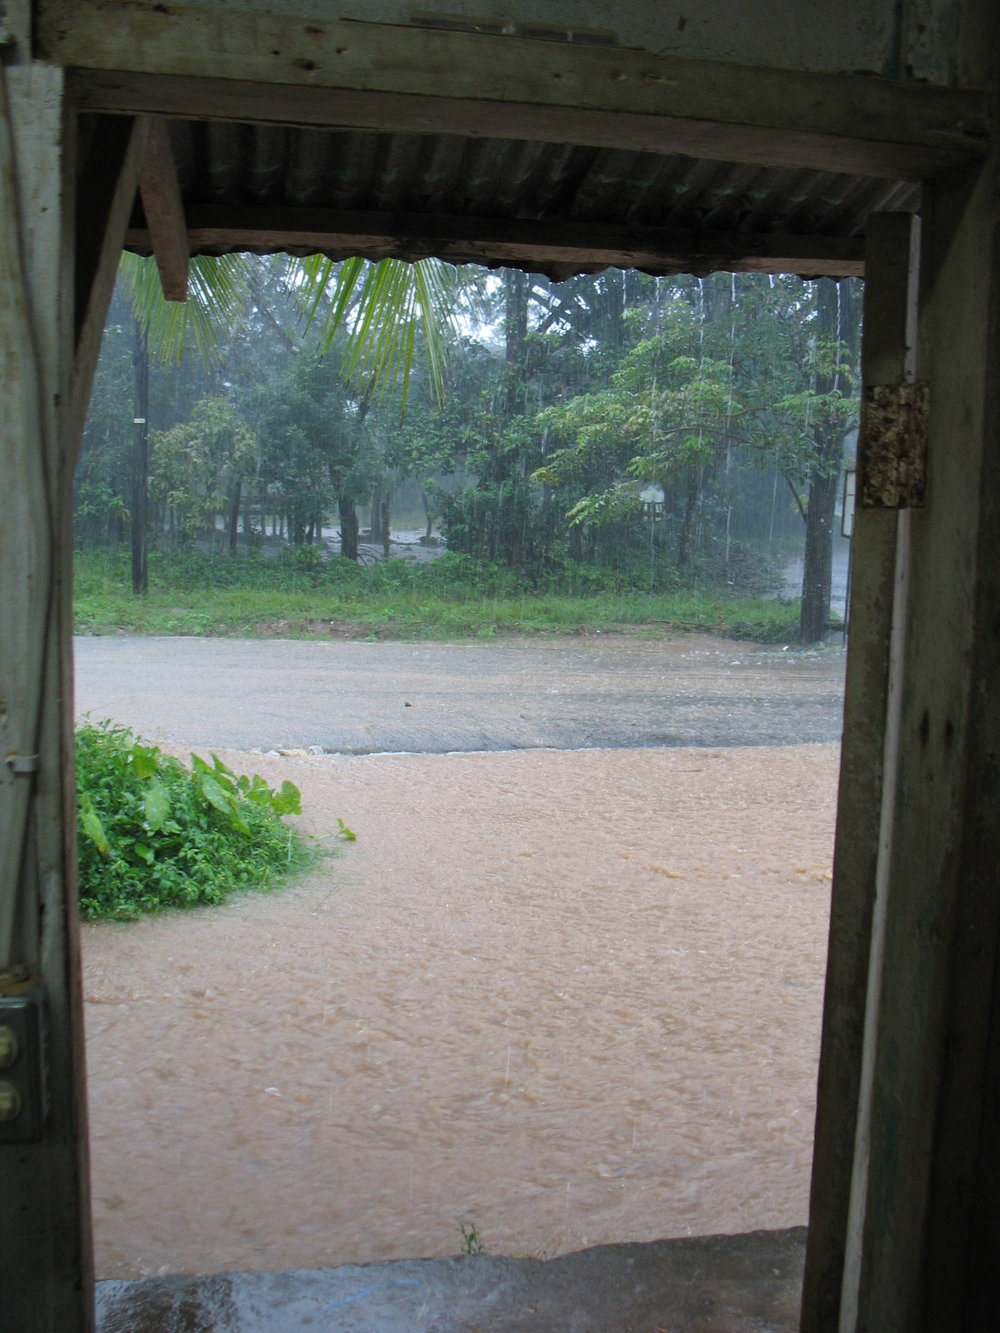 Rainy season as viewed from inside the shop.